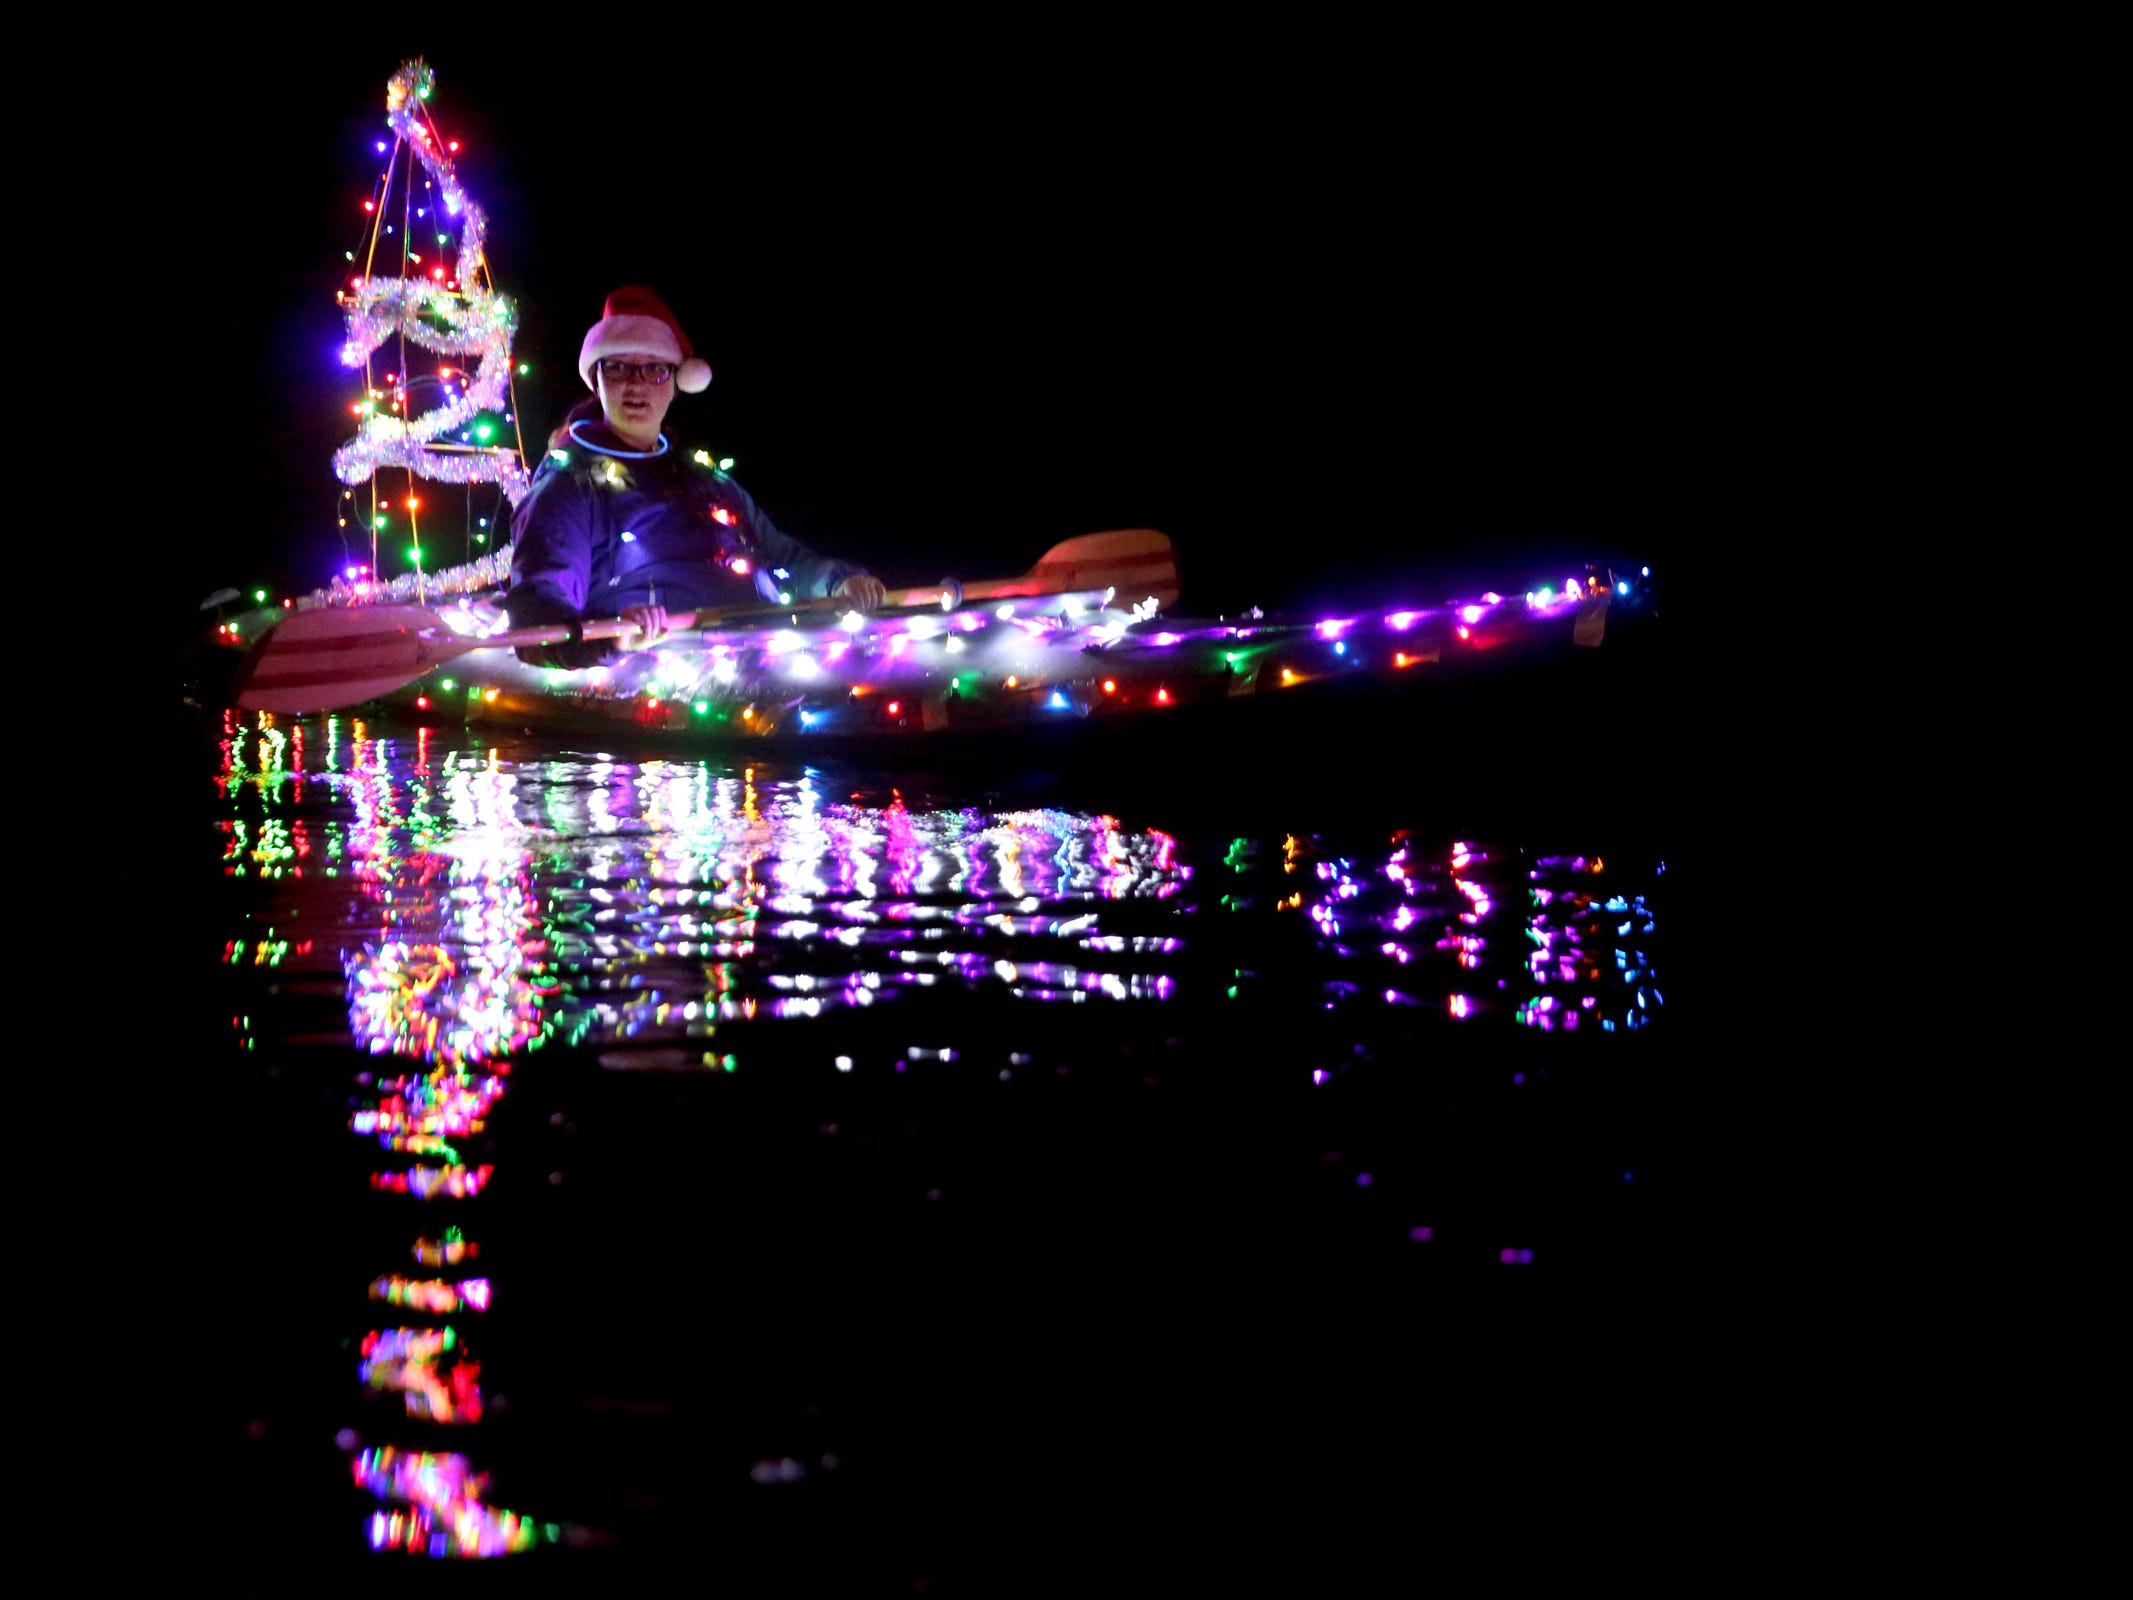 A woman kayaks during the 14th annual Winter Solstice Illuminata Regatta on the Willamette River at Riverfront Park in Salem on Saturday, Dec. 15, 2018.